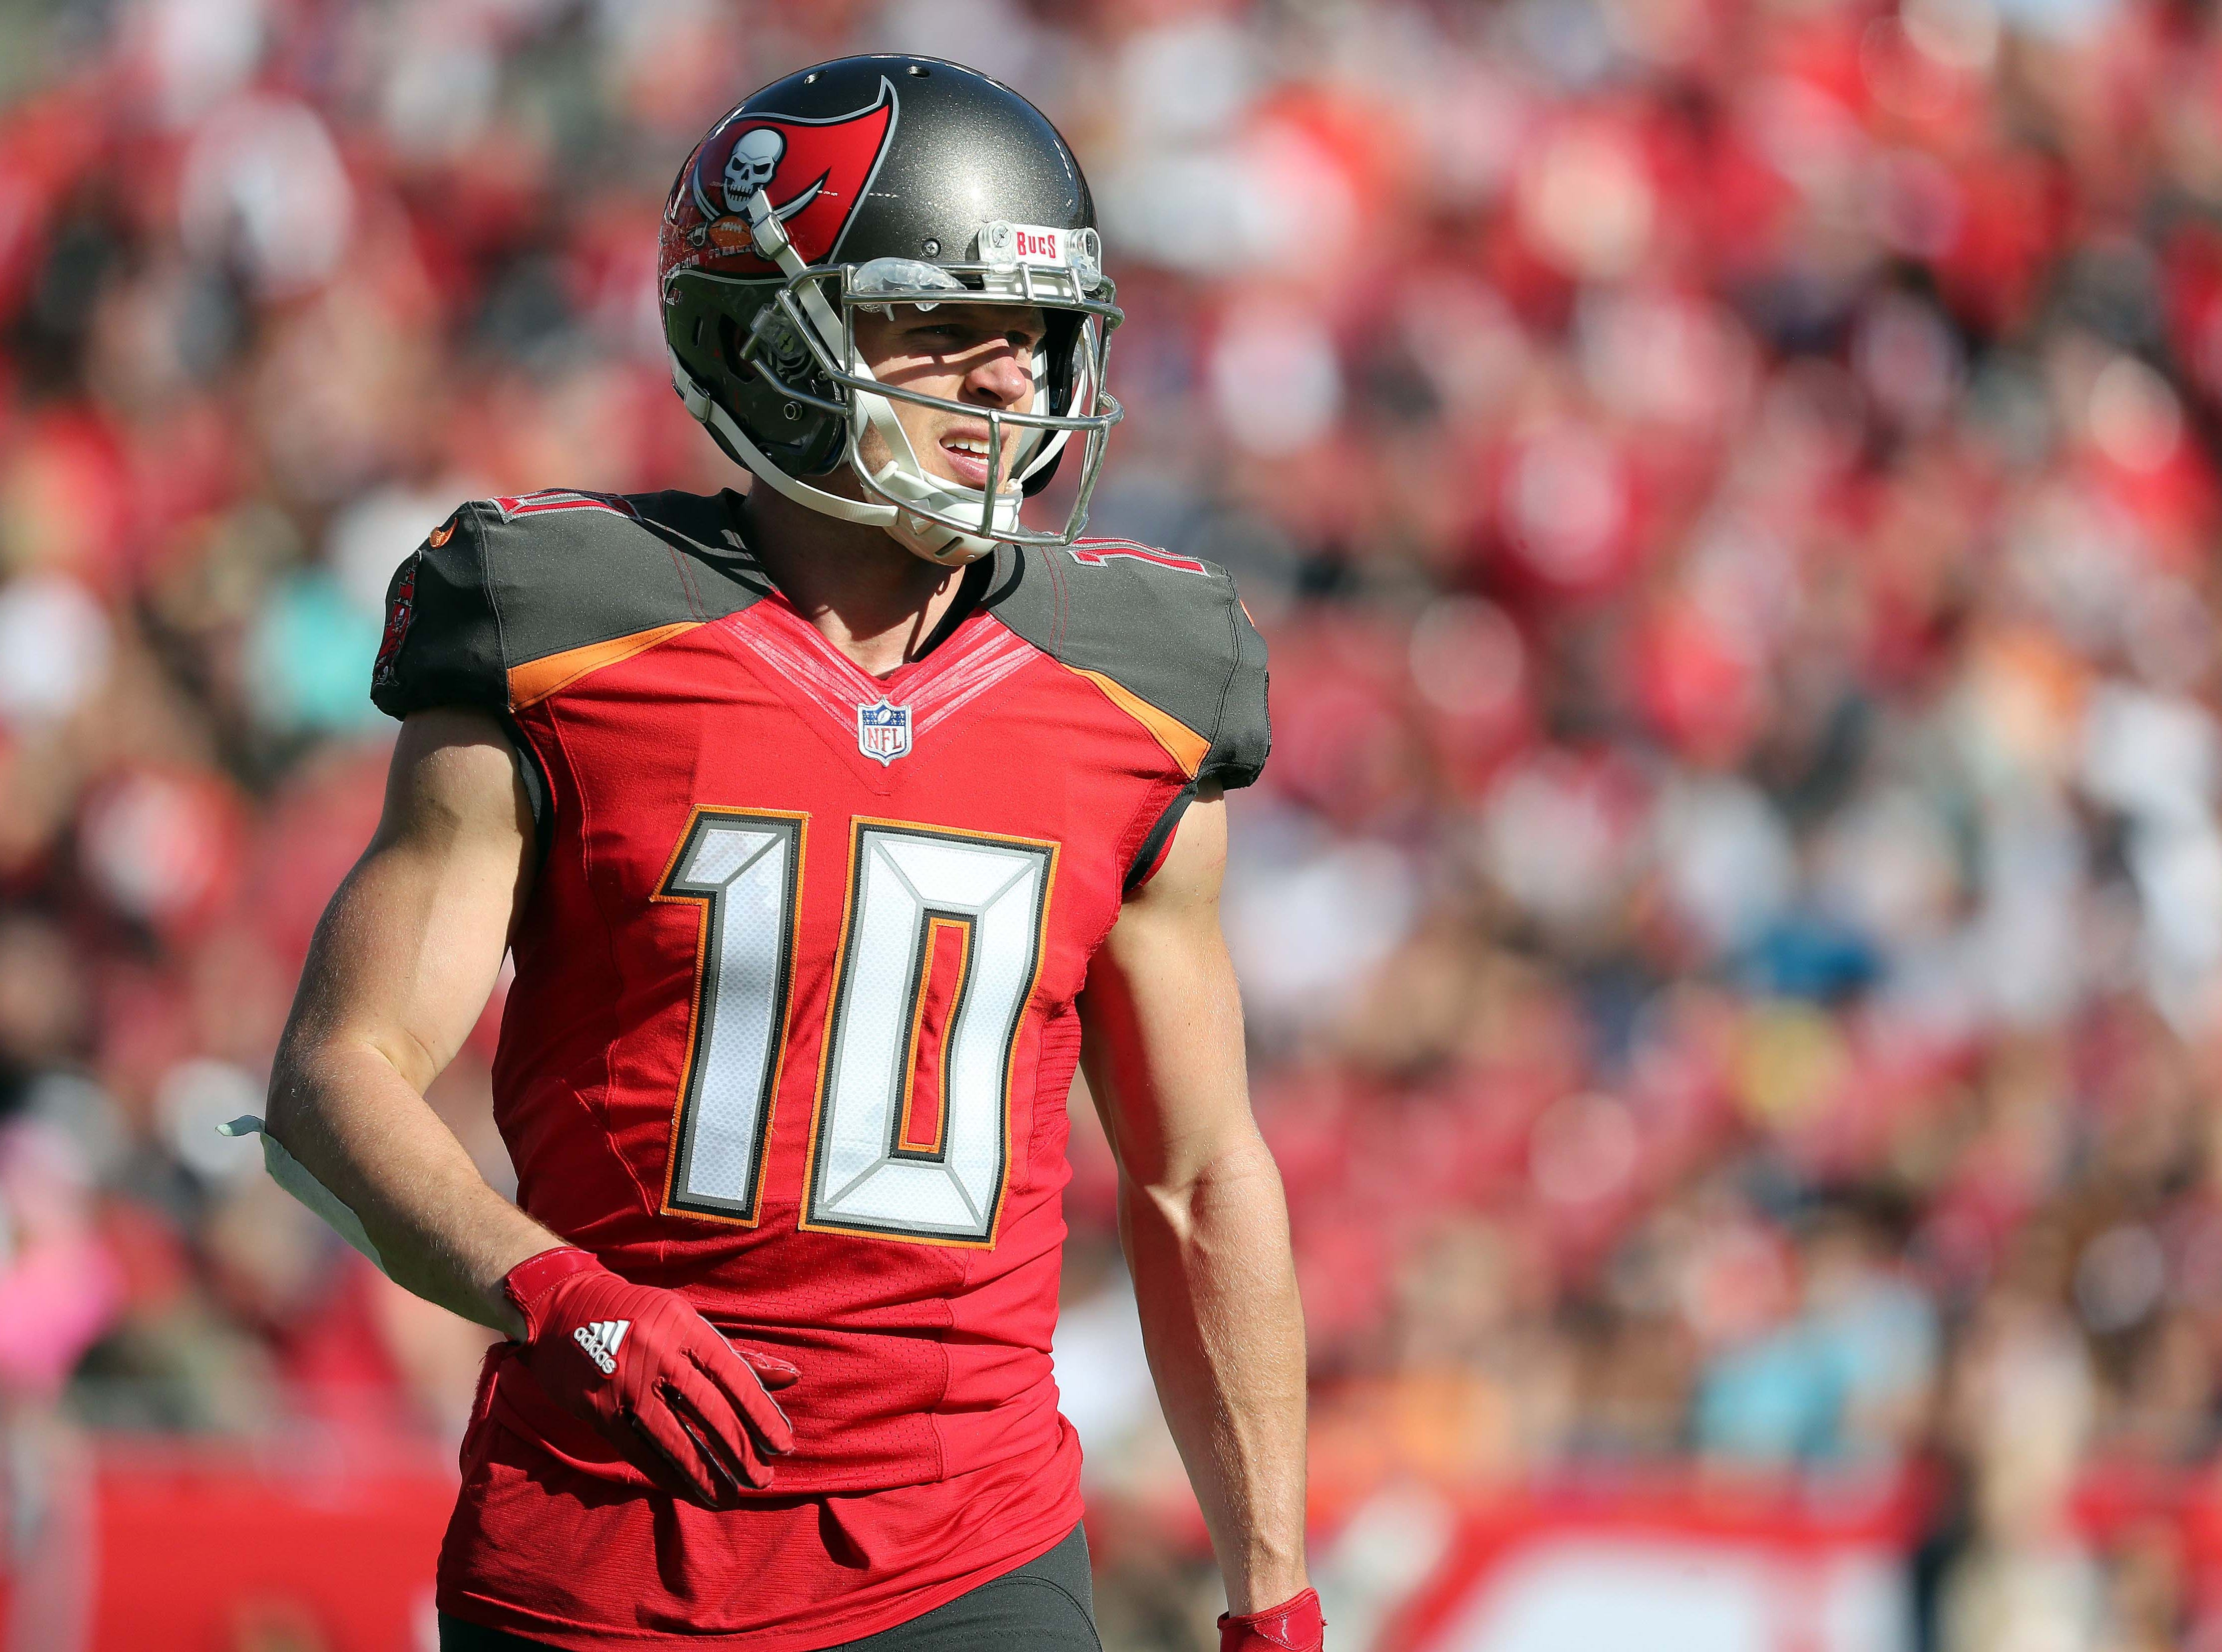 17. Adam Humphries, WR, Buccaneers: Agreed to deal with Titans